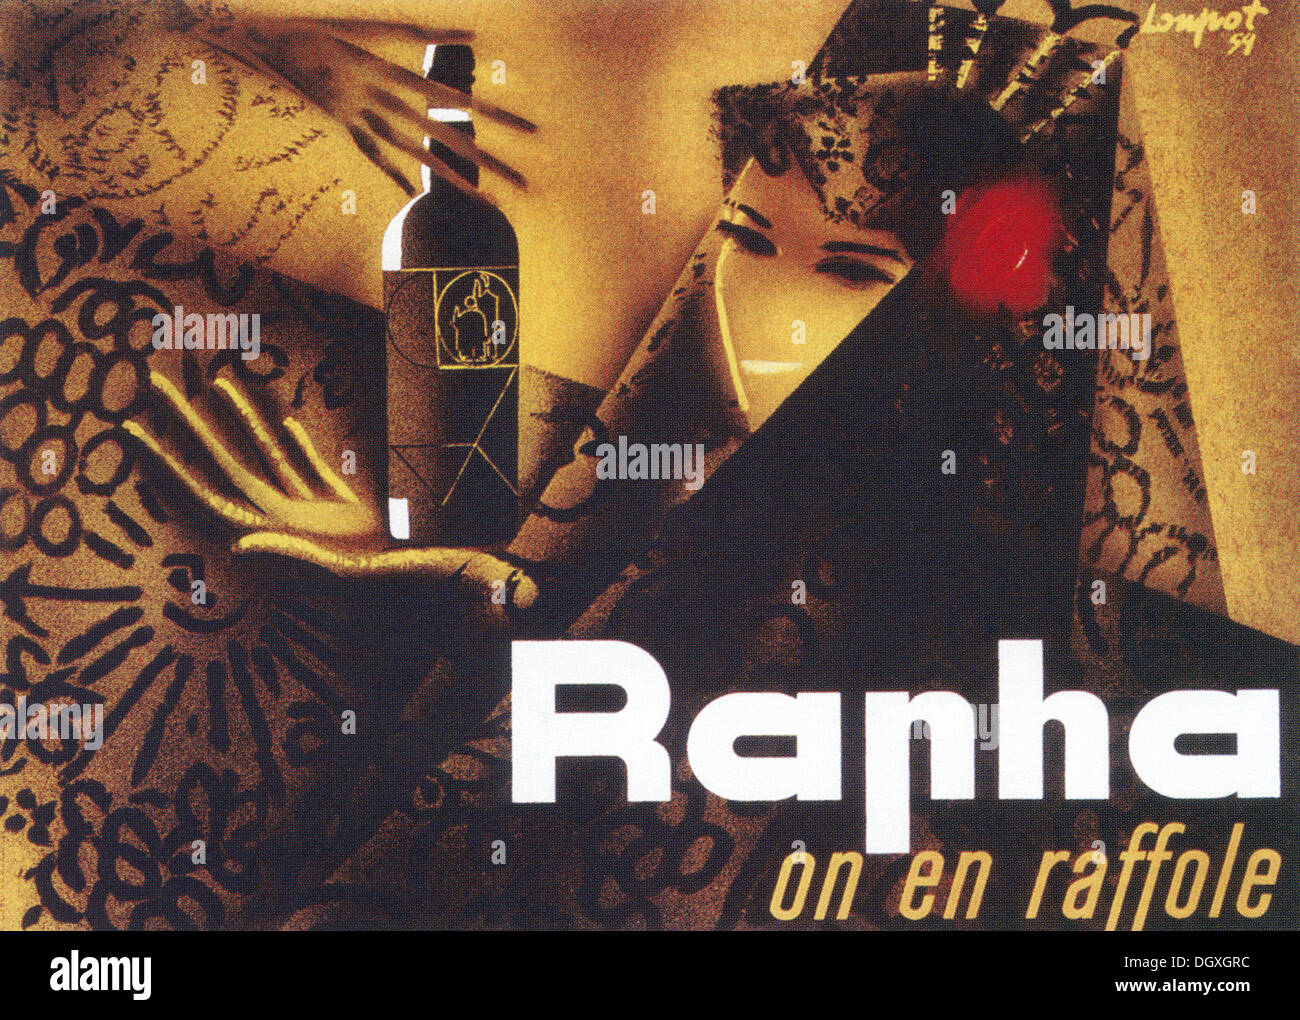 Raphaël - par Charles Loupot, vintage poster - éditorial uniquement. Photo Stock